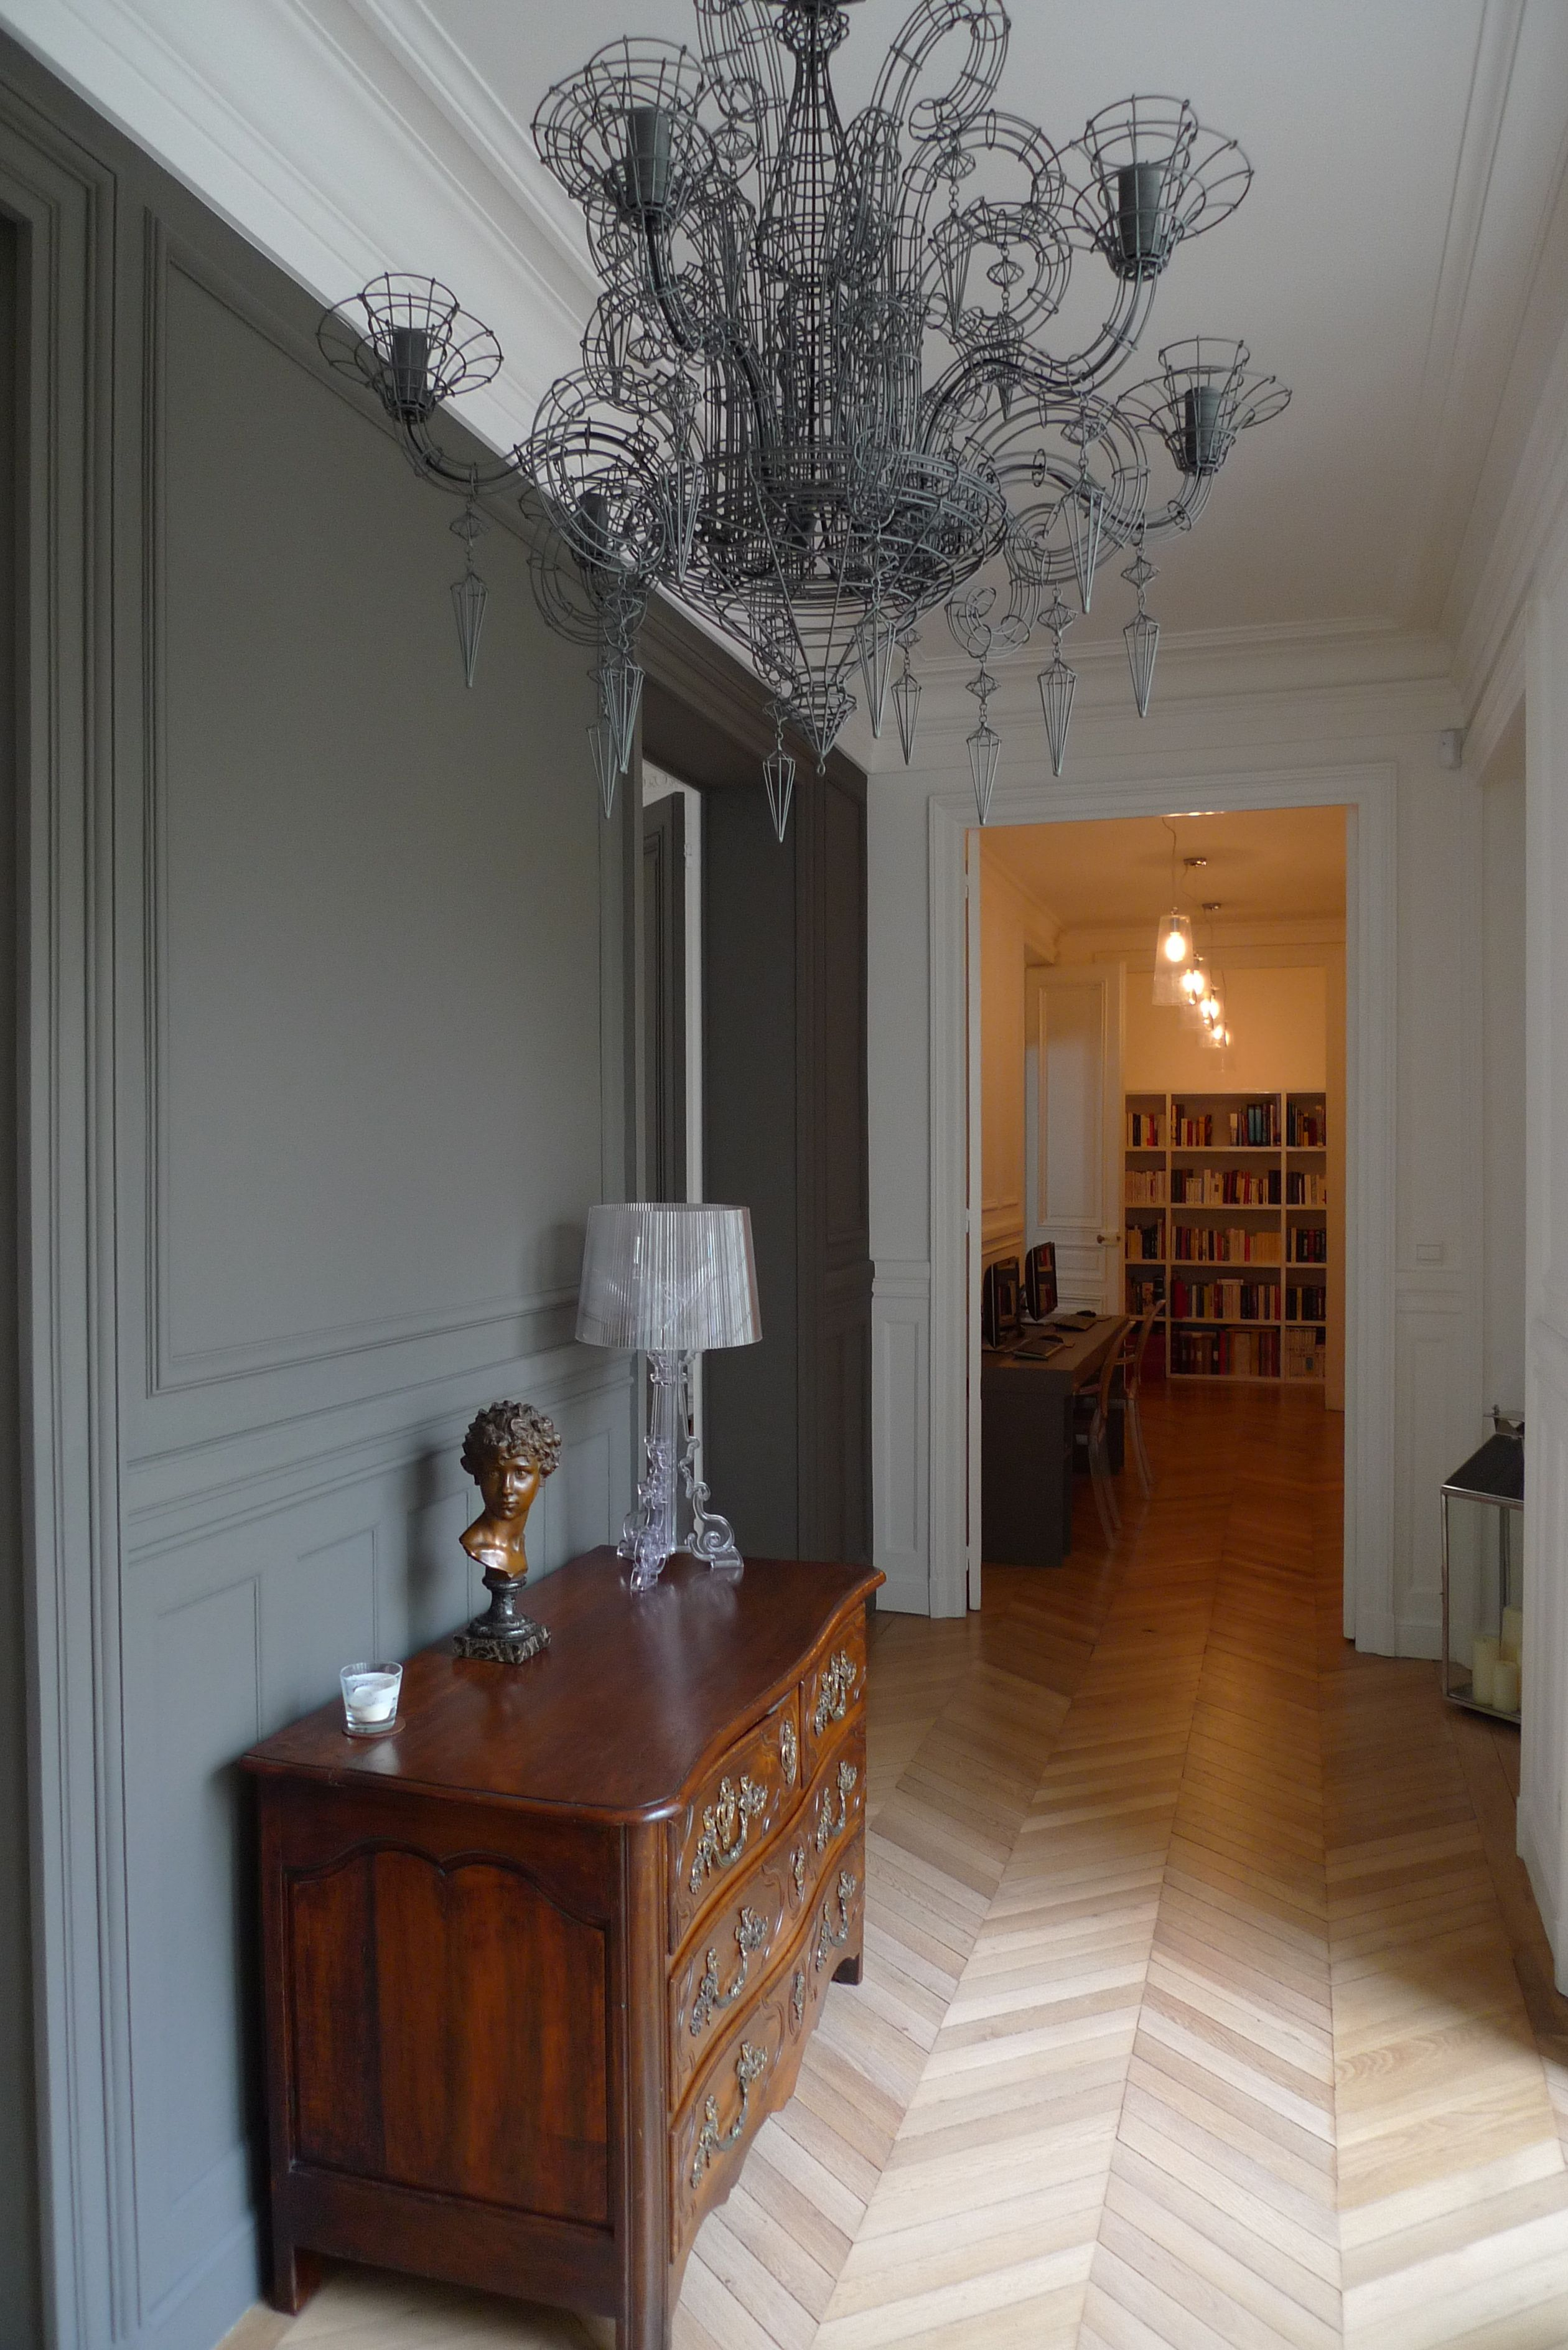 Appartement parisien d co int rieure divers pinterest interiors salon - Deco appartement parisien ...